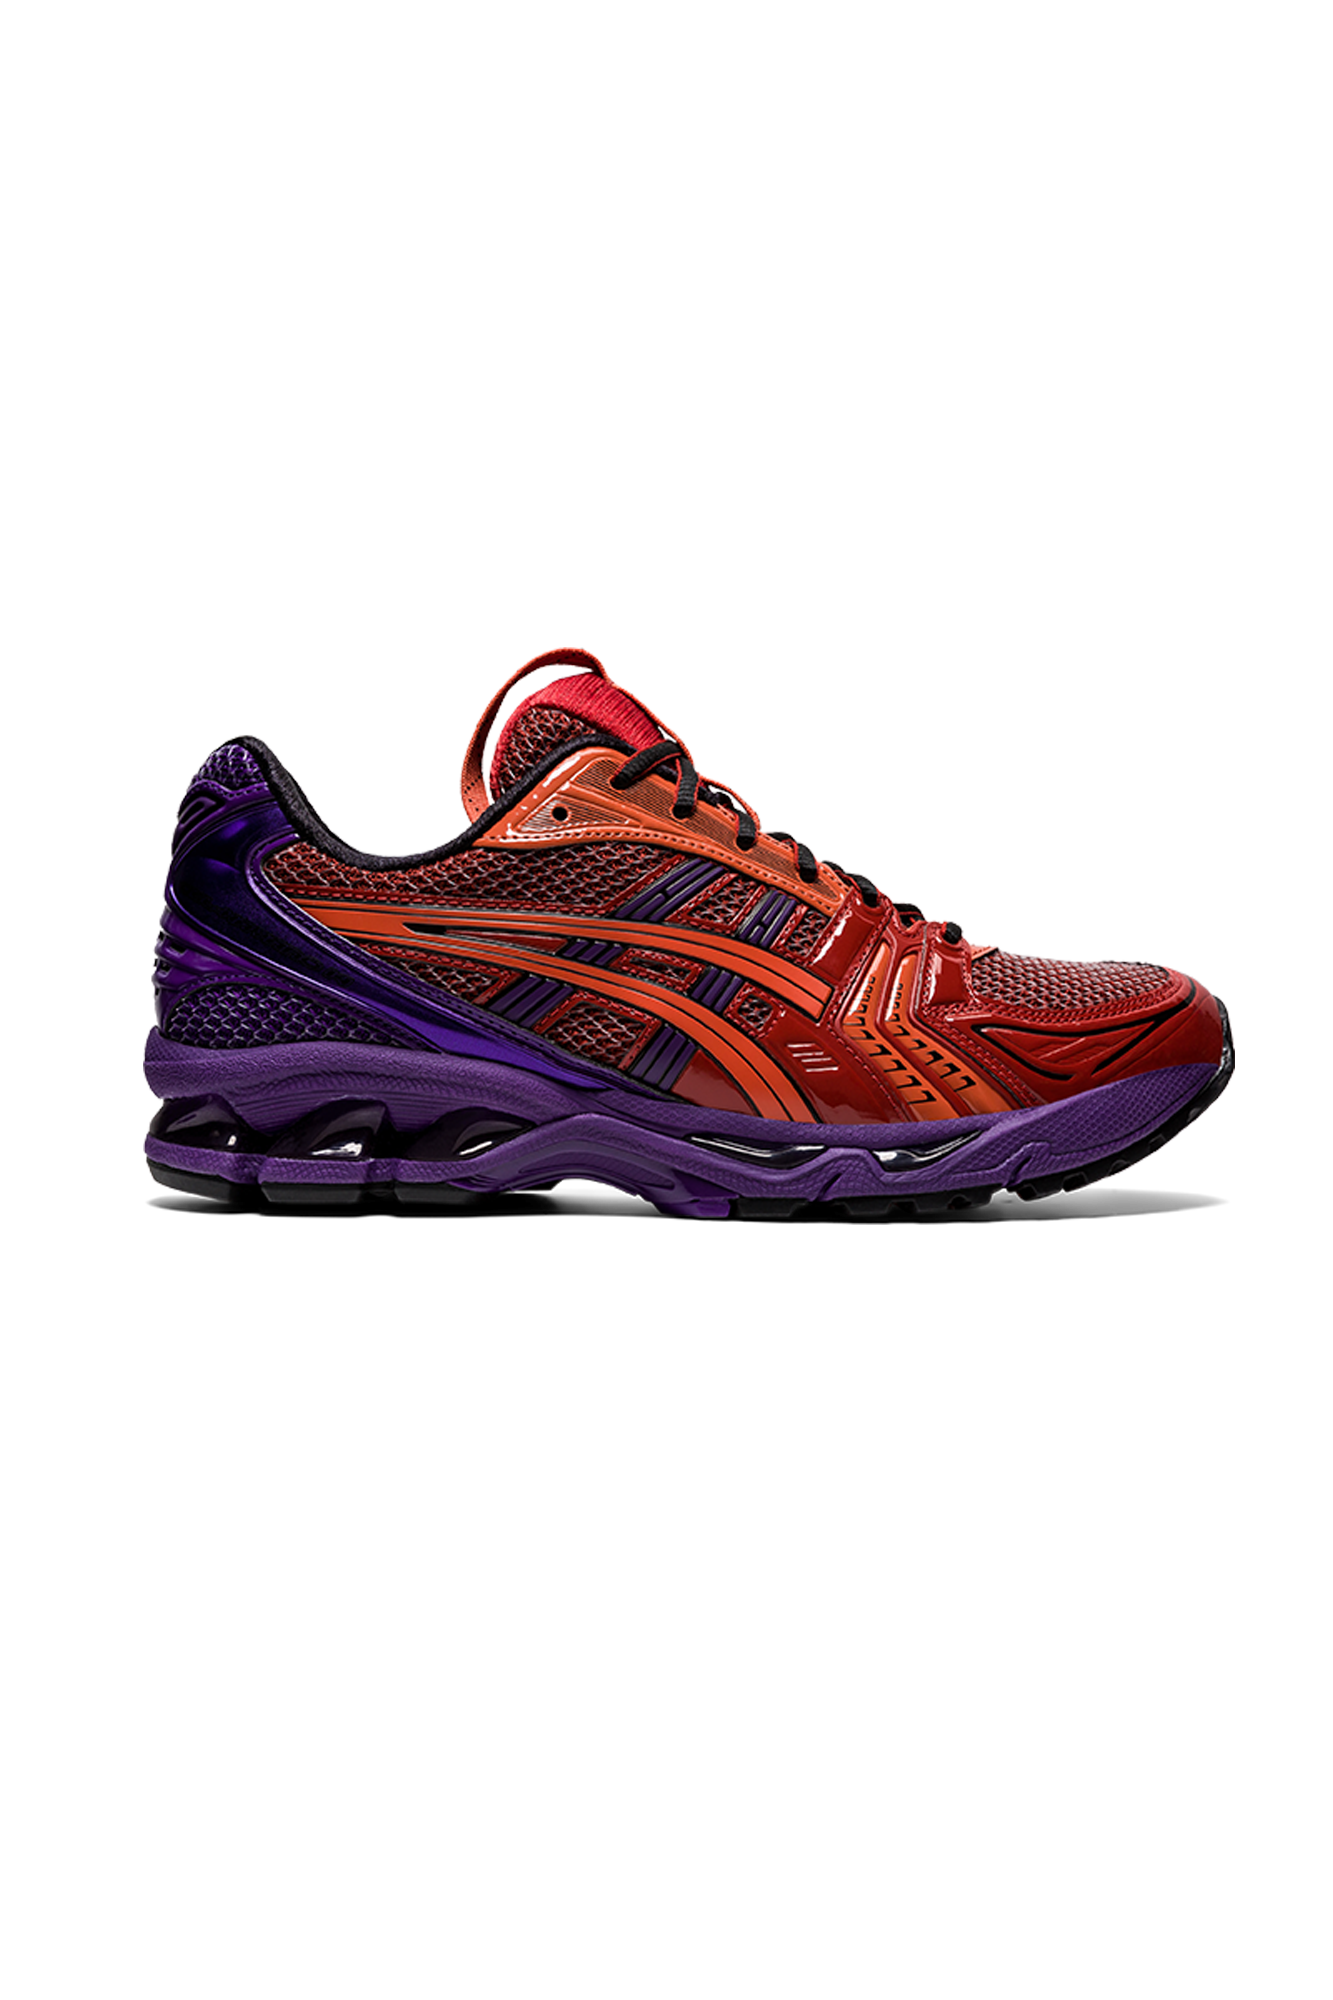 Asics Sneakers UB1-S Gel-Kayano 14 Rosso 1201A189-#000#600#5,5 - One Block Down